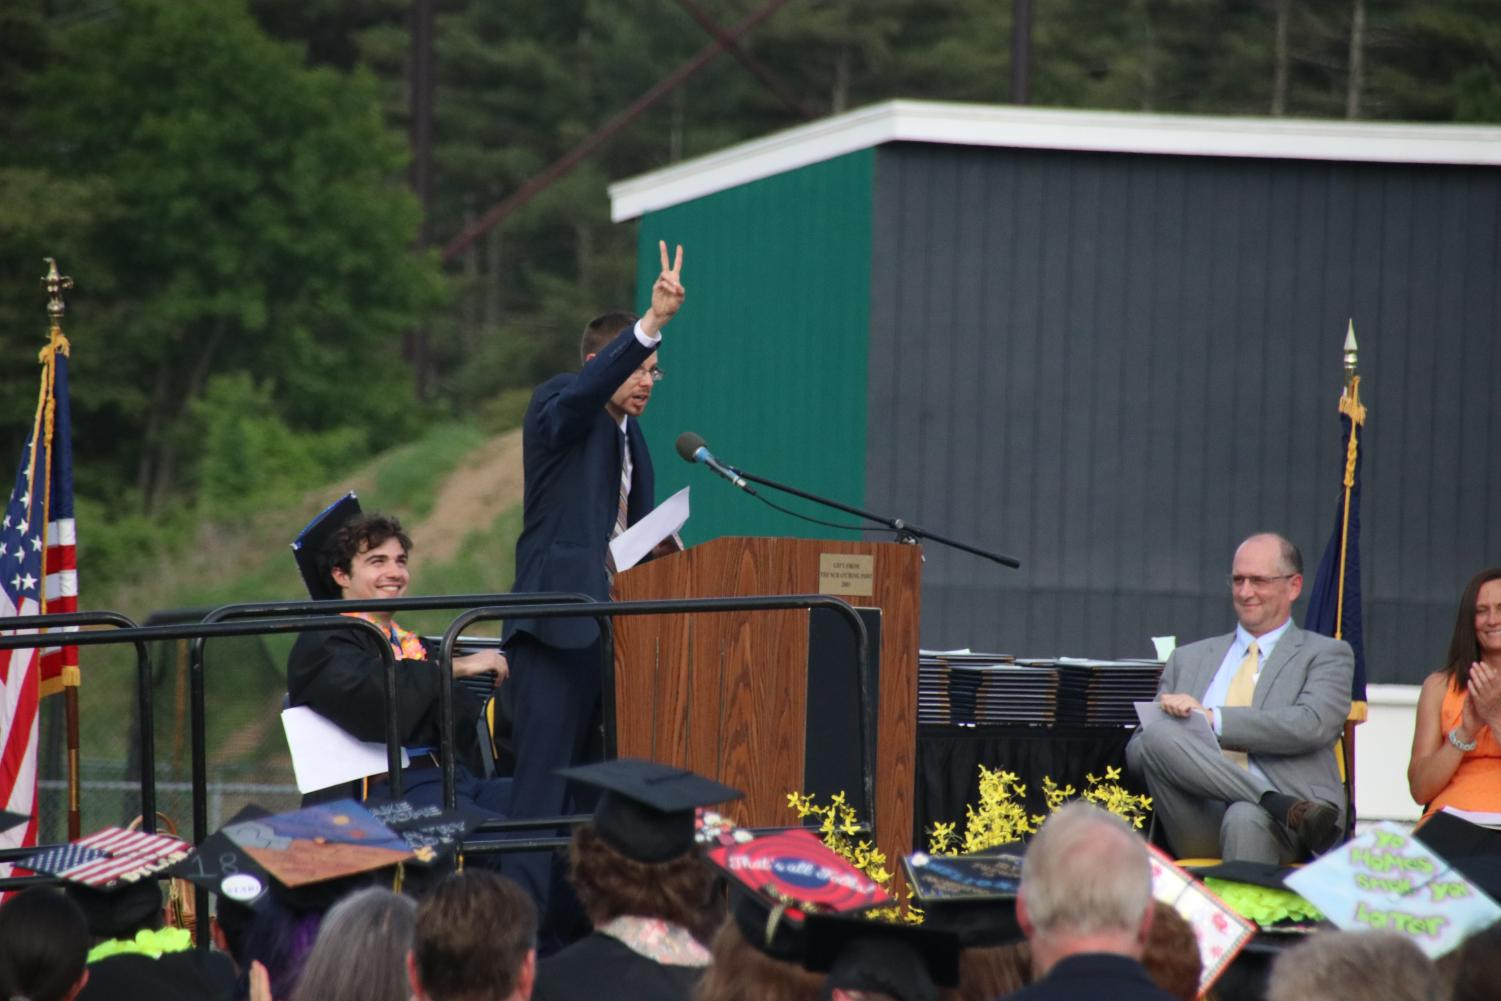 Sean Whelan sent off the Class of 2018 with a peace sign.